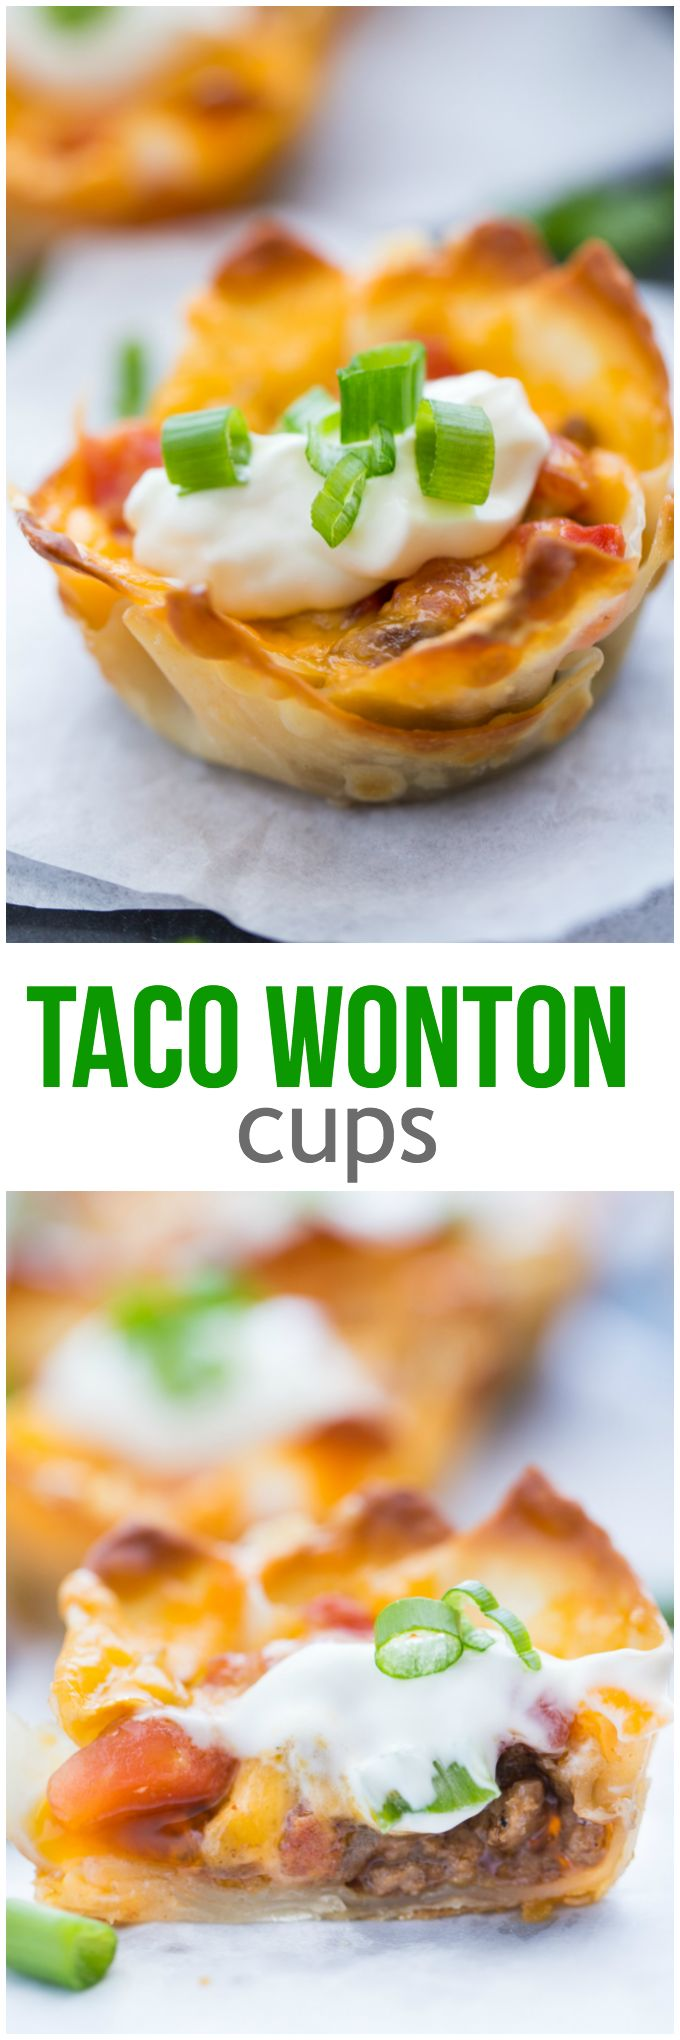 Taco Wonton Cups - Make this yummy appetizer in a muffin tin with wonton wrappers! Top the seasoned taco beef with your favourite fresh toppings and melted cheese and watch these crispy treats disappear in a flash.